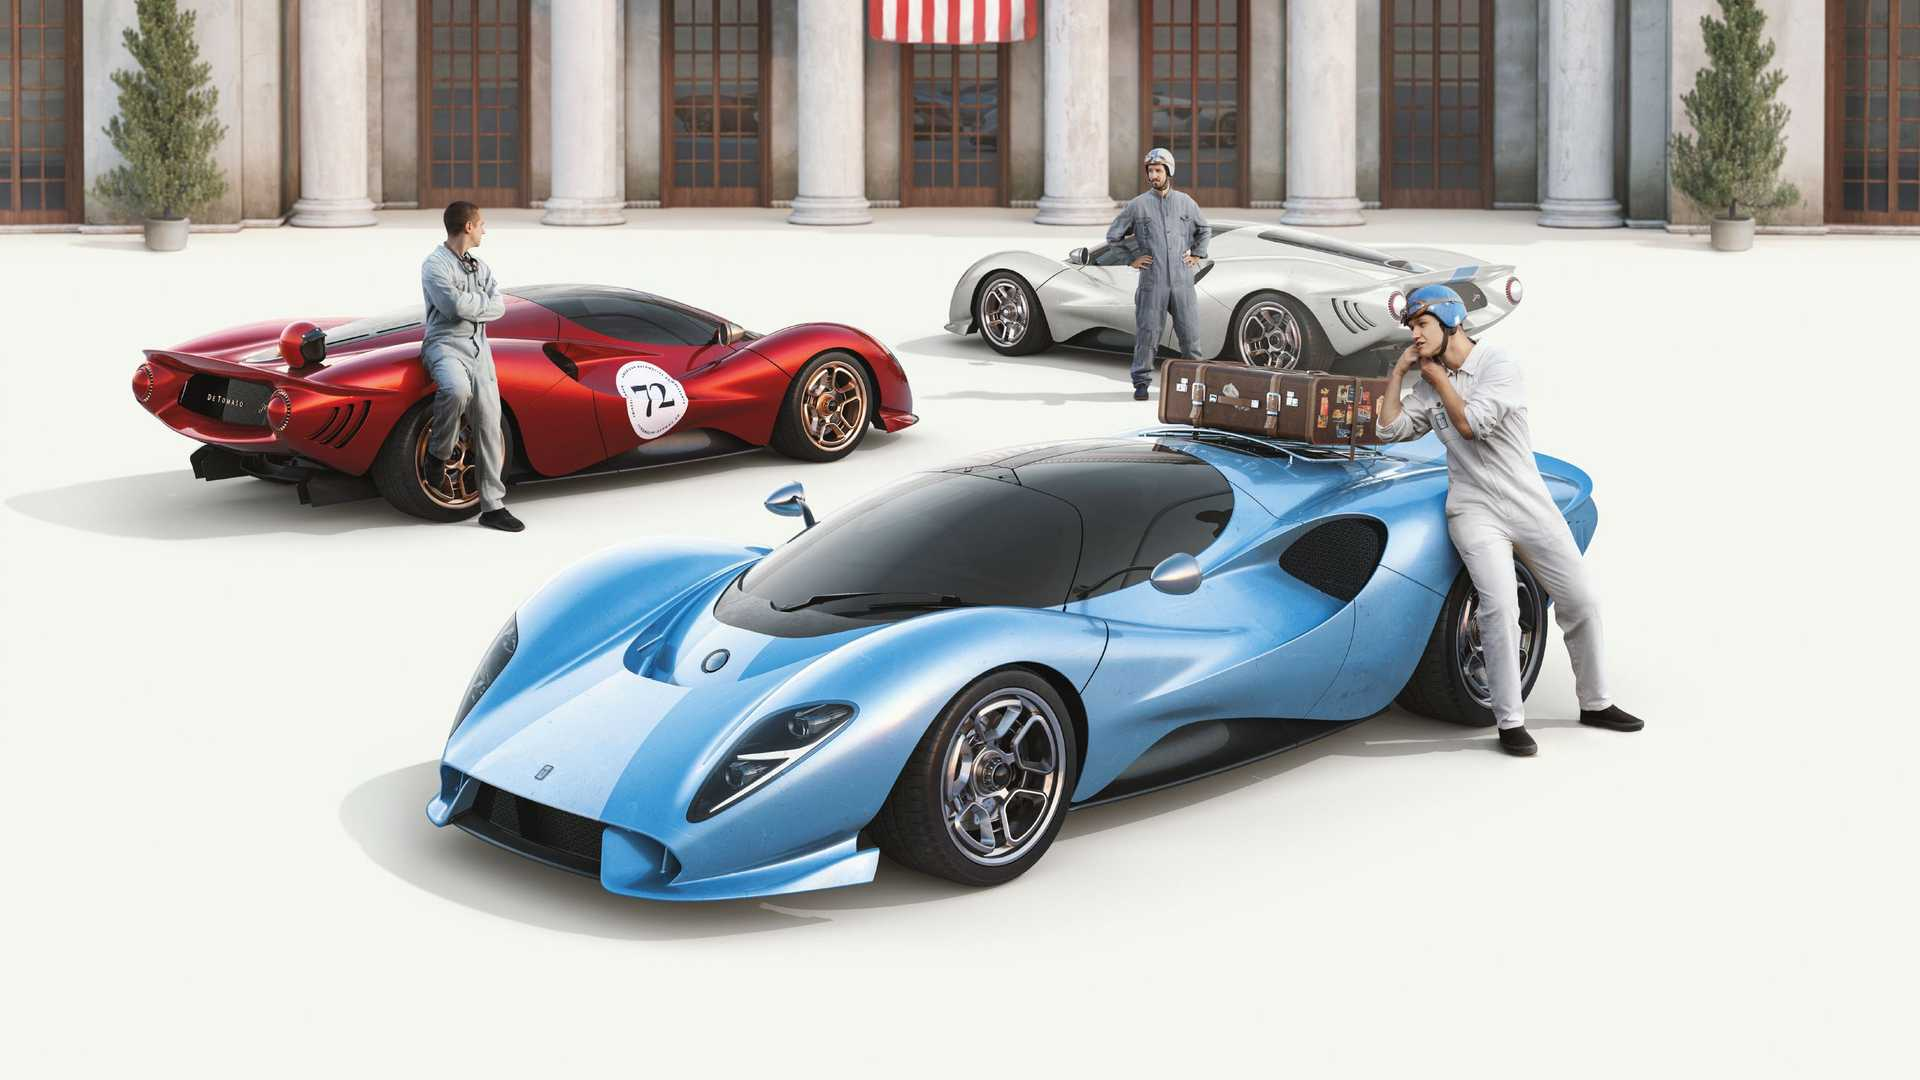 The resurrected Italian car marque made quite an entrance at the last year's Goodwood Festival of Speed with its all-new P72 supercar. The production was slated to begin in 2020, but it now turns out the company never found a suitable location for it in Europe and may have to relocate to the United States.